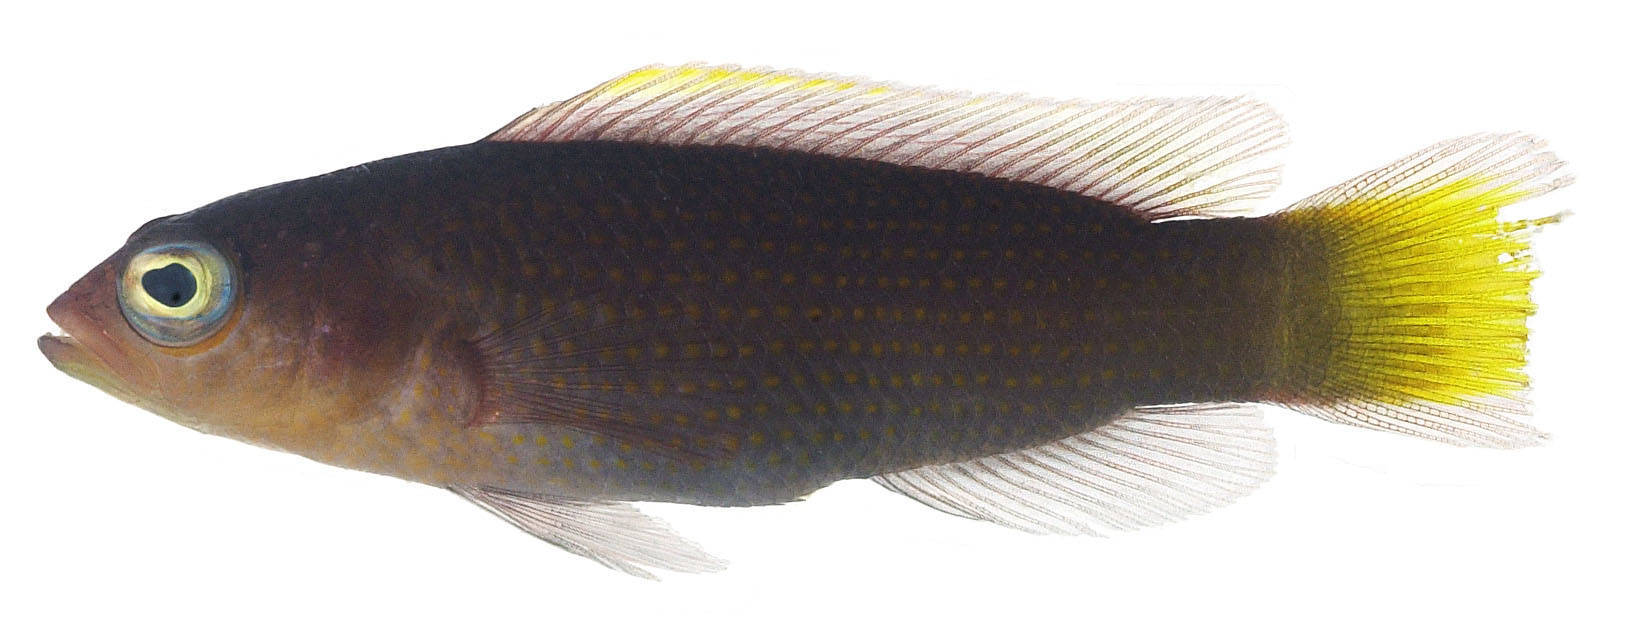 Image of Marshall Is. dottyback